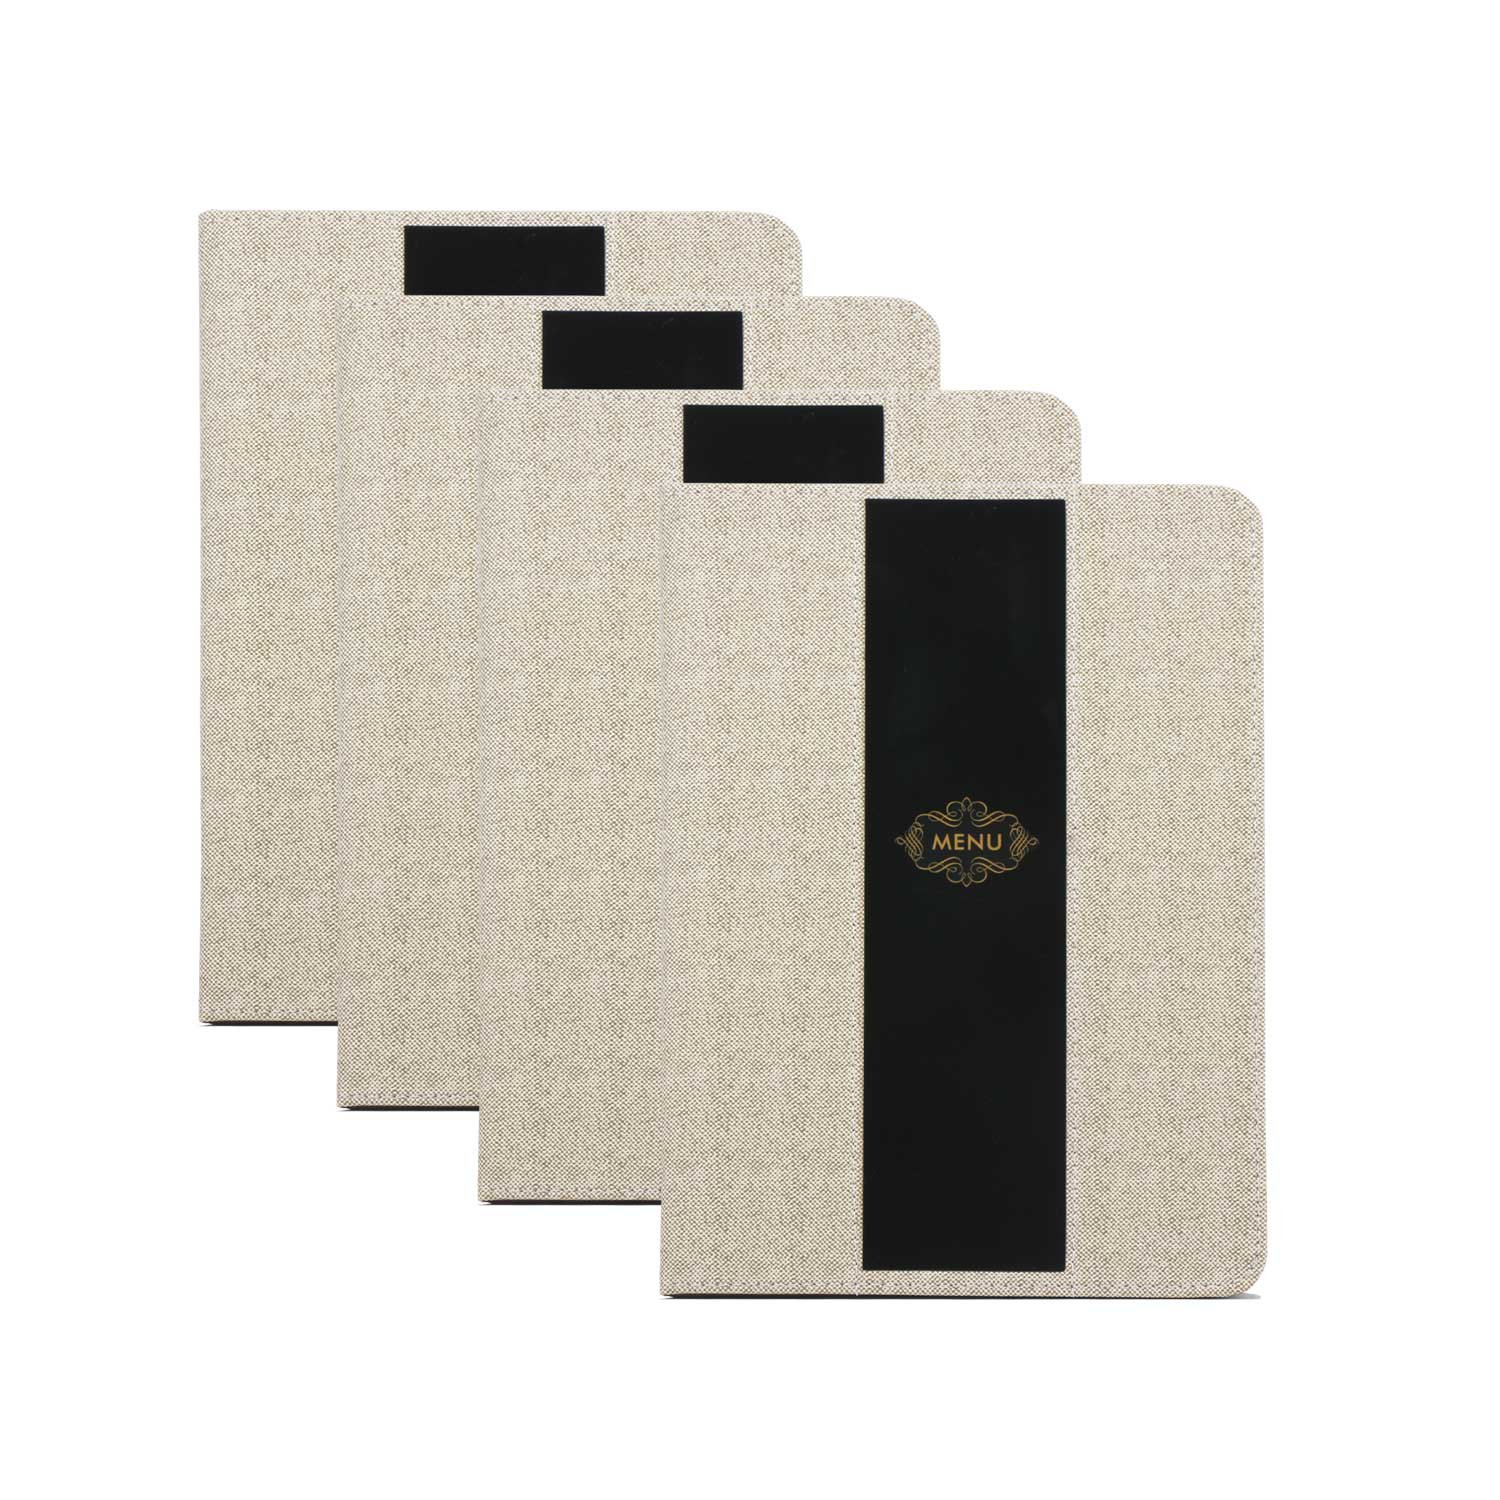 Menu Covers, 4 Pack Segarty Leather Menu Holders with 8 Insert Pages, Double Views, Table Menu Cover for Restaurants, Diners, Cafes, Bistros, Drinks and Cafeterias, 8.5x12 Inch